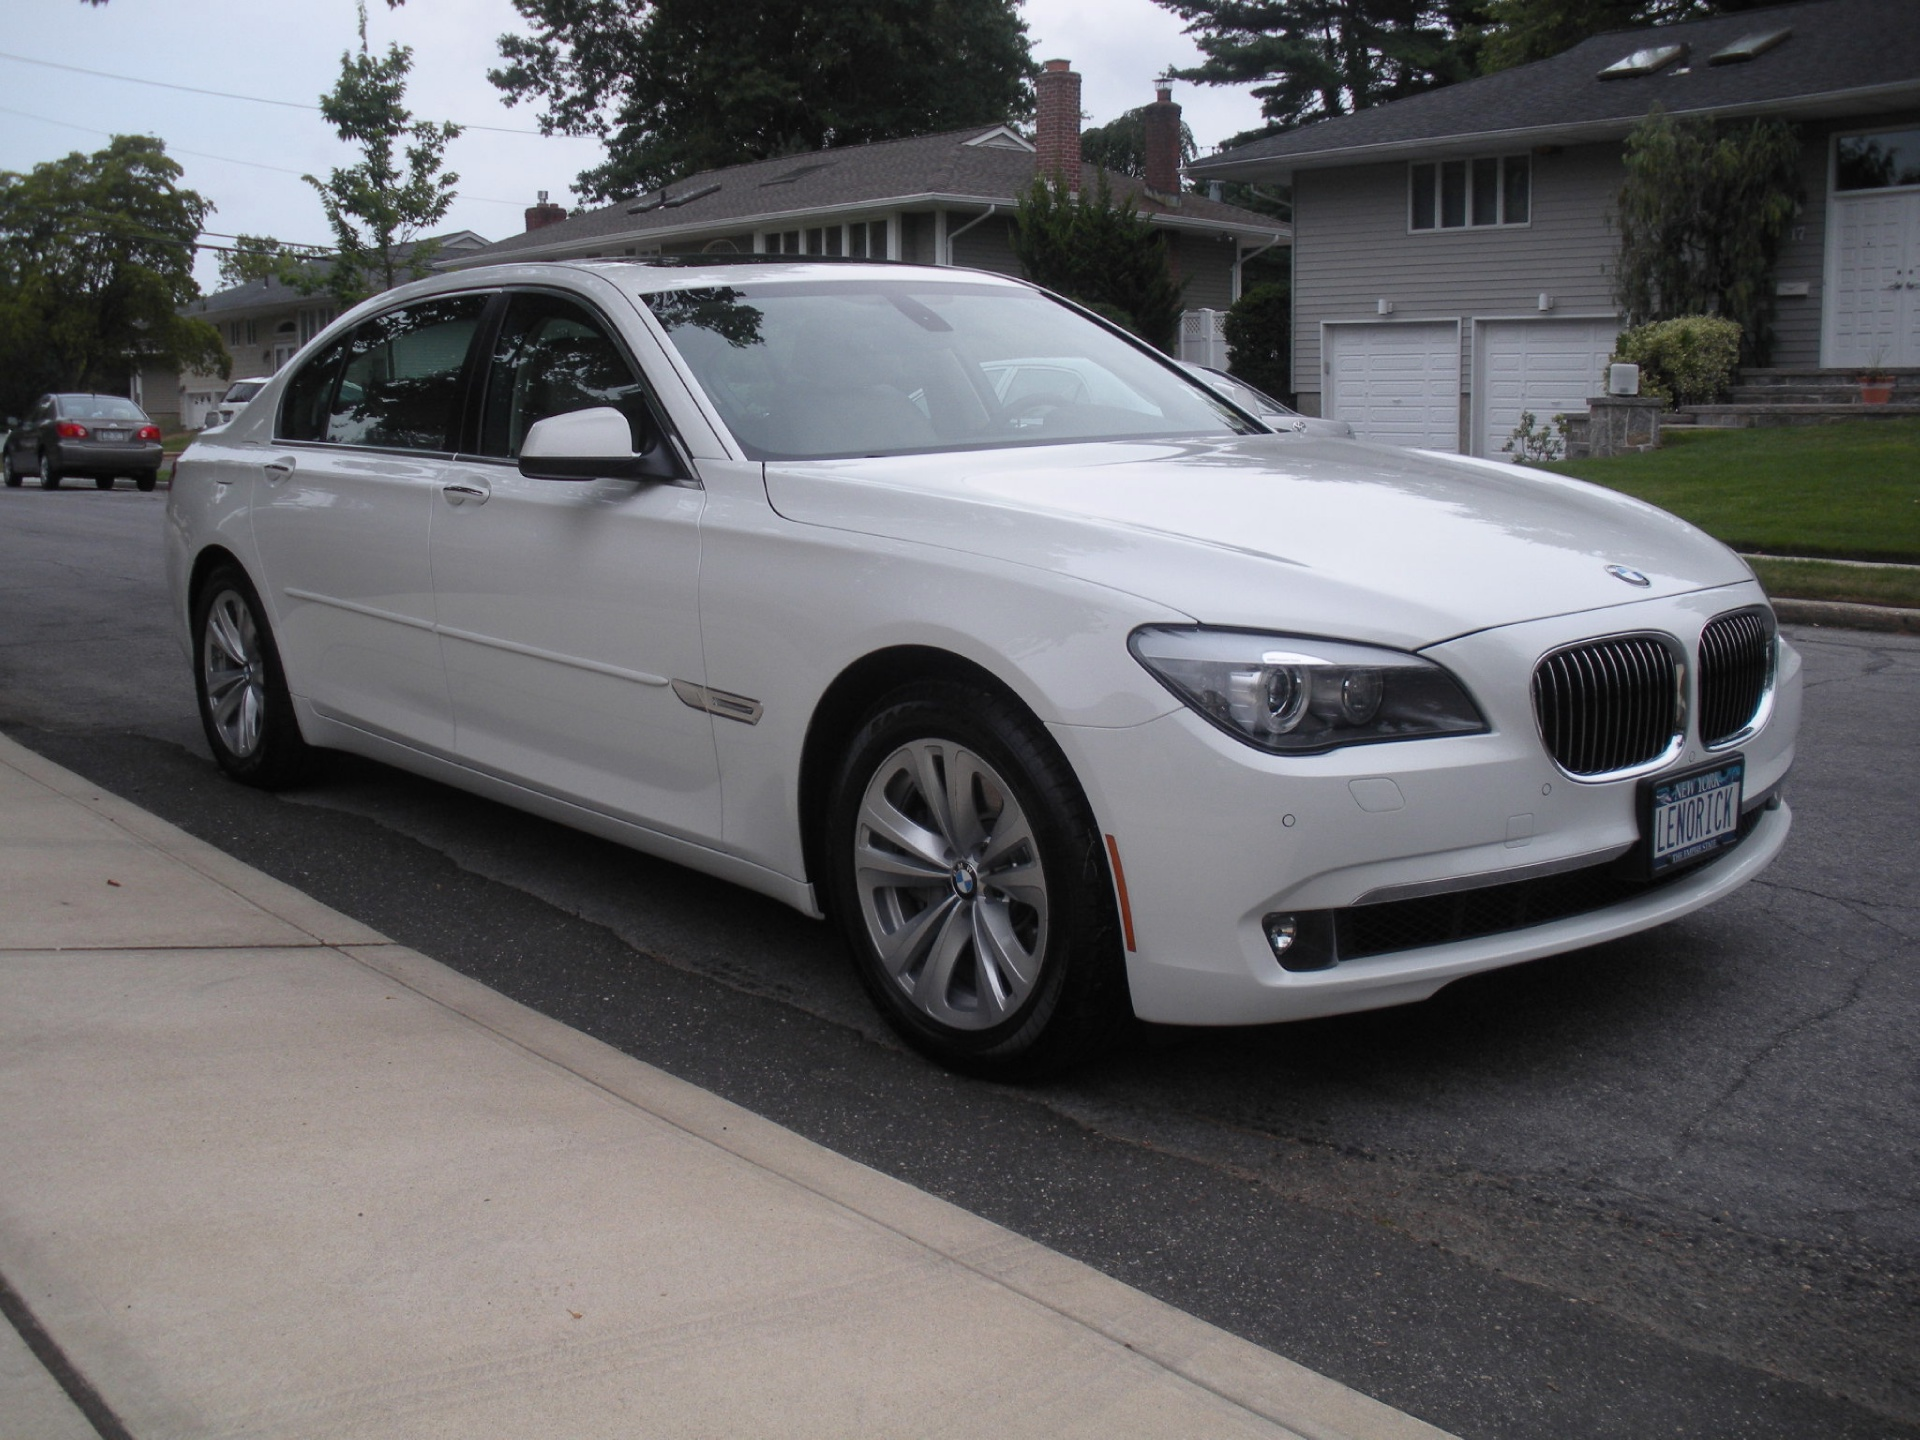 2011 Bmw 740il Stock 3520 13734 For Sale Near New York